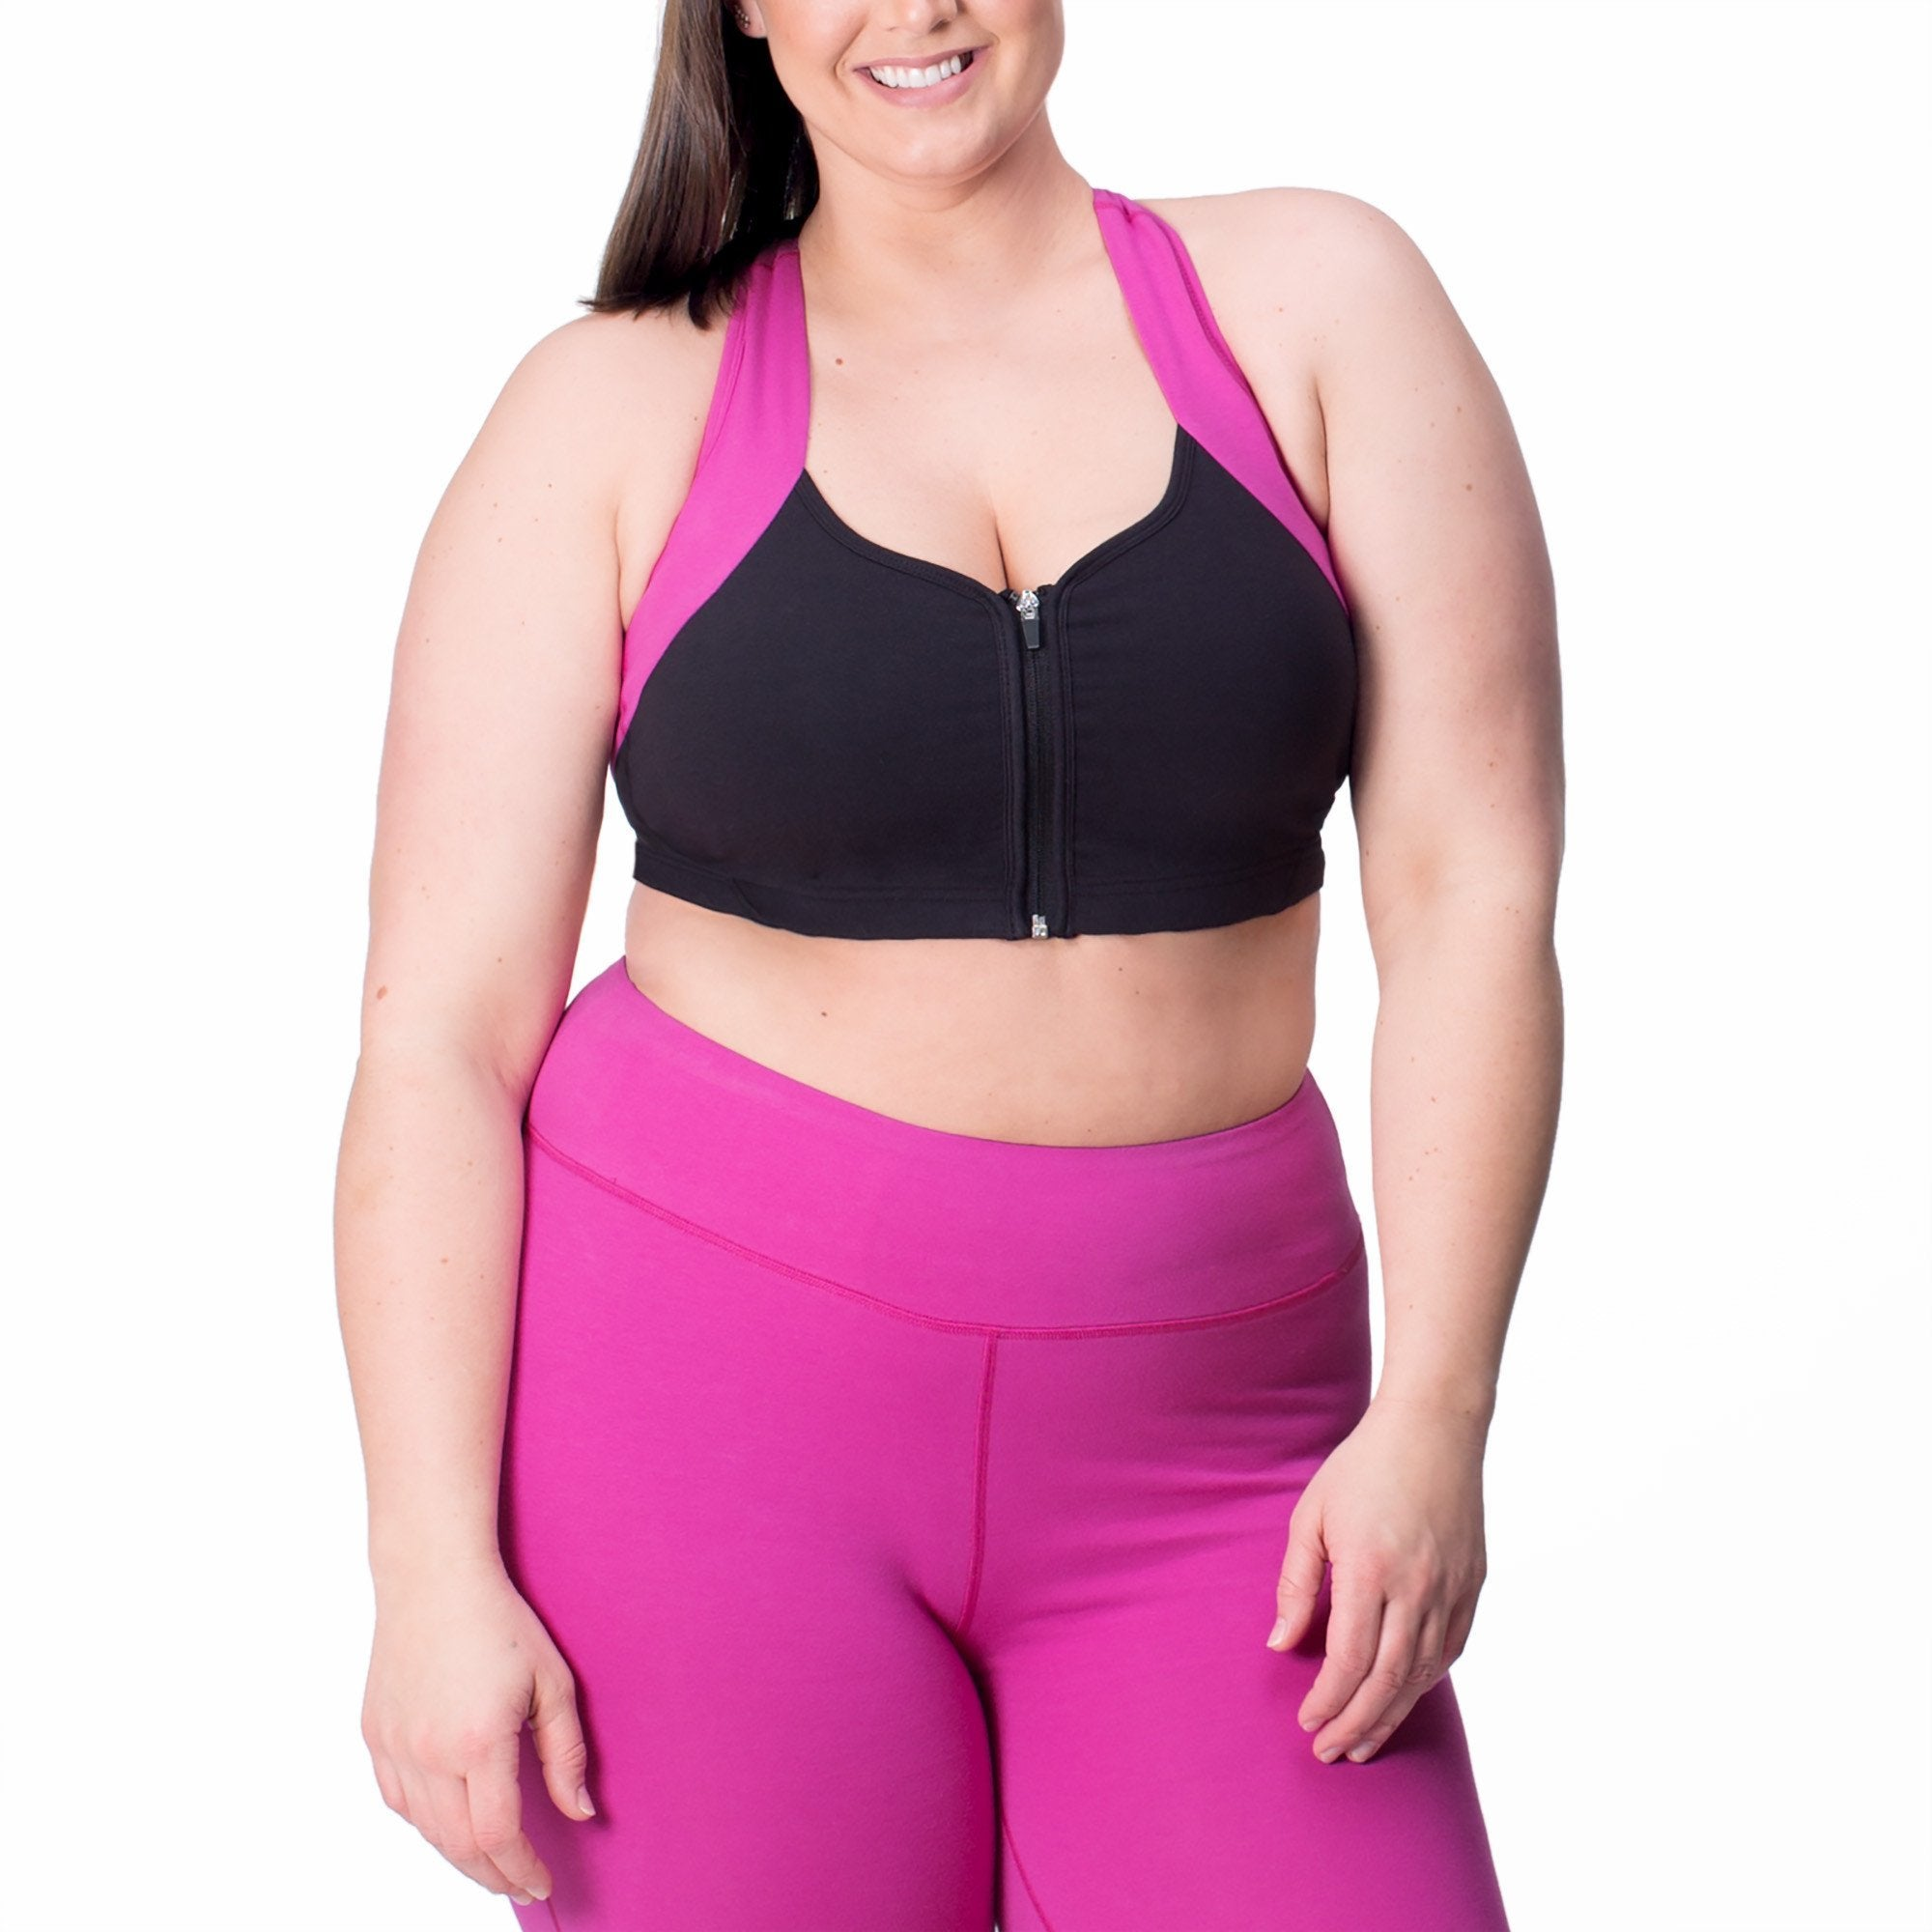 Jenna Bra - Rainbeau Curves, 14/16 / Wild Orchid, activewear, athleisure, fitness, workout, gym, performance, womens, ladies, plus size, curvy, full figured, spandex, cotton, polyester - 1